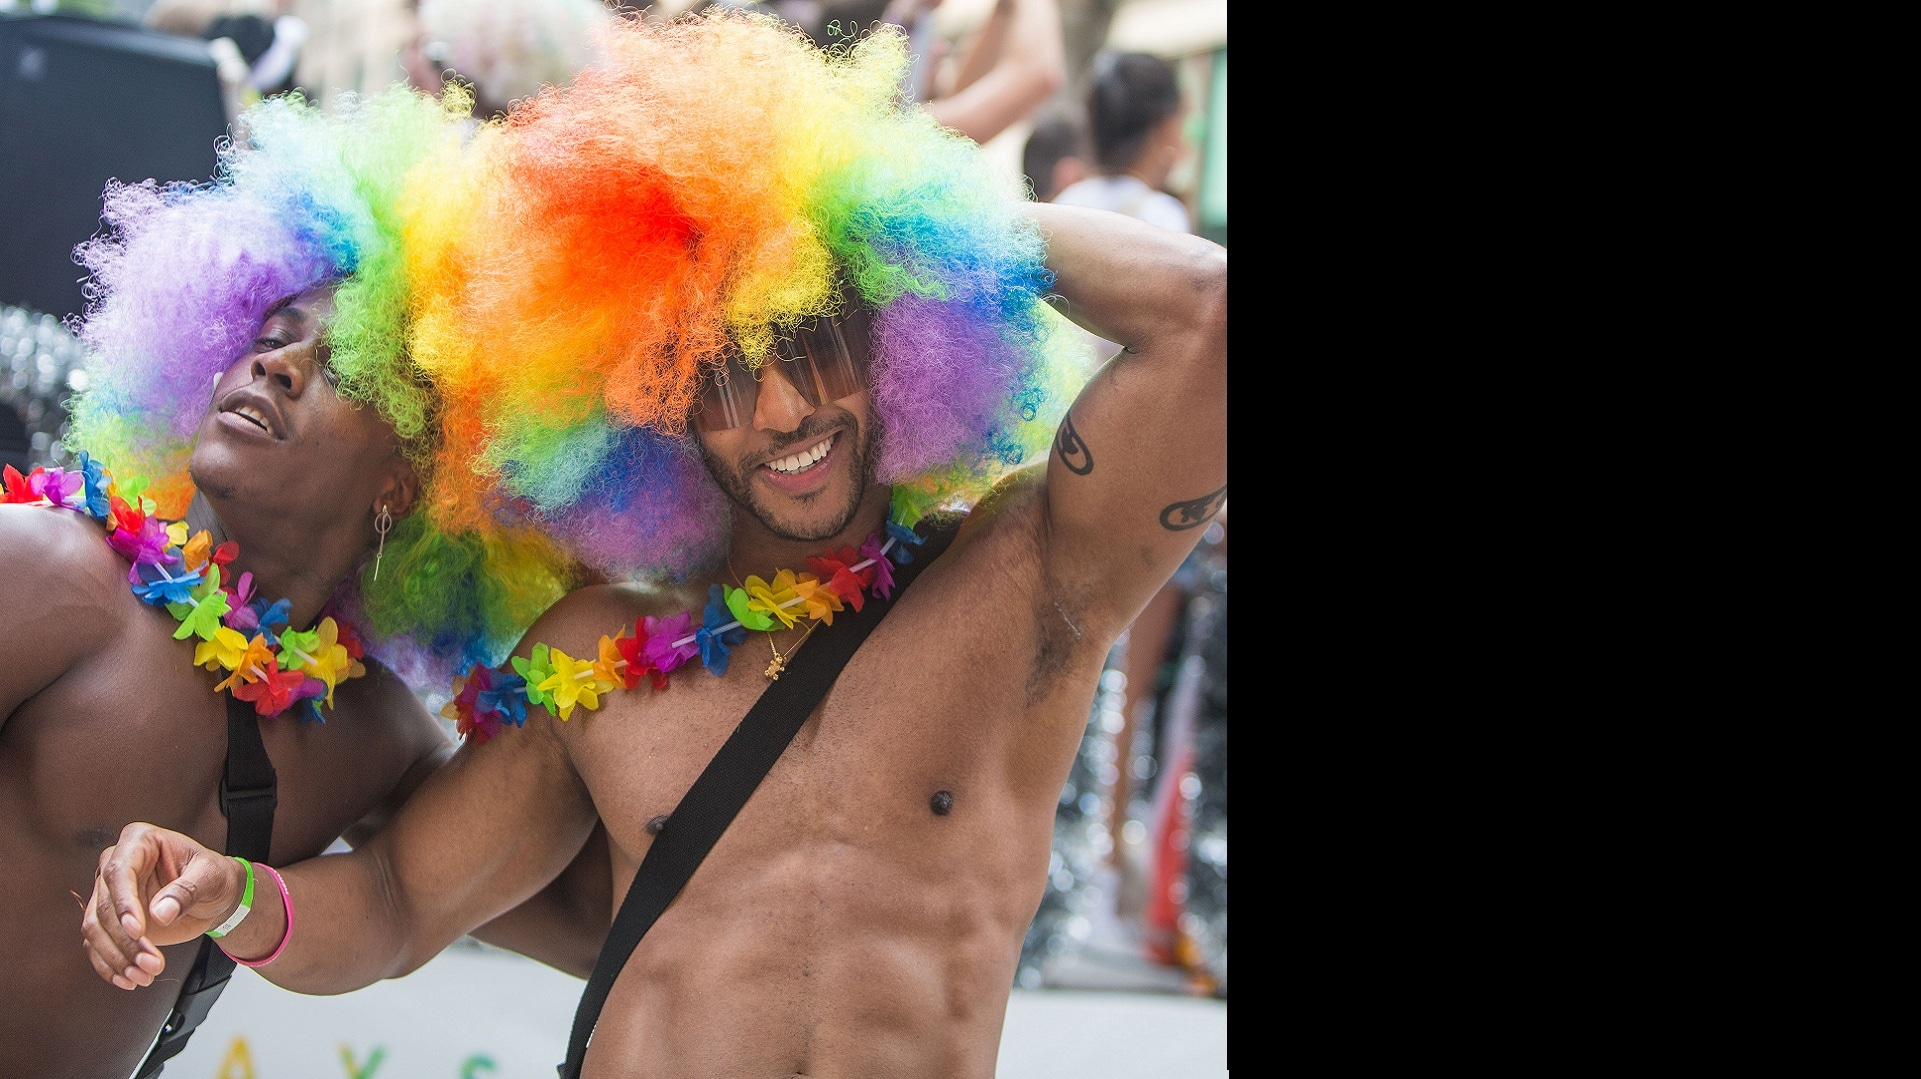 At the 2018 New York Pride Parade, glimpses of celebration, defiance and love